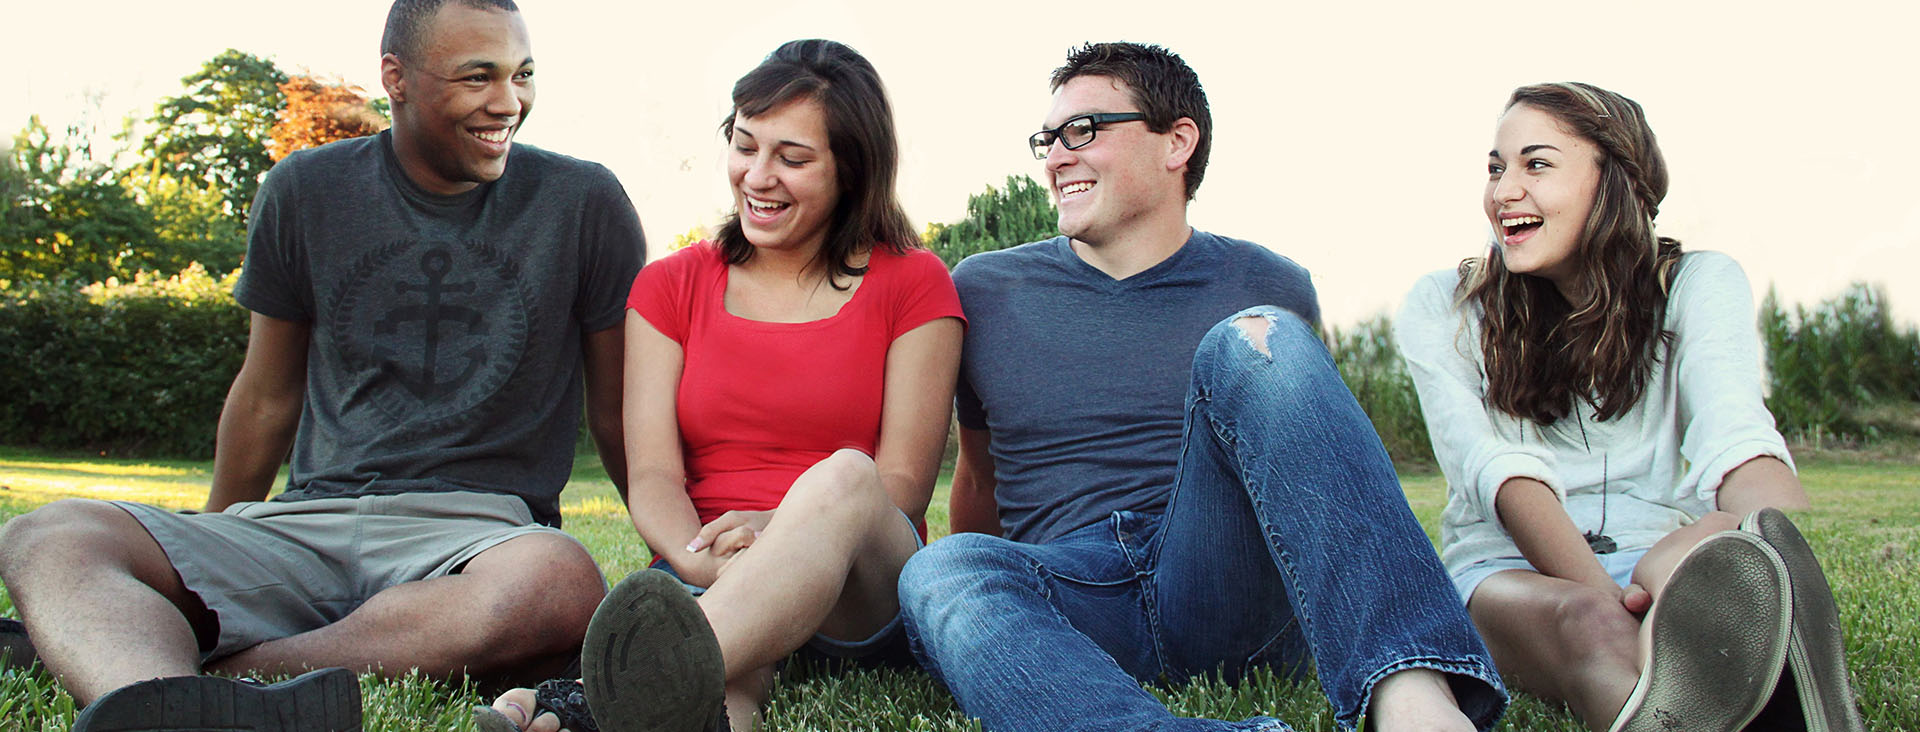 Four friends - two women and two men sitting together on a lawn.